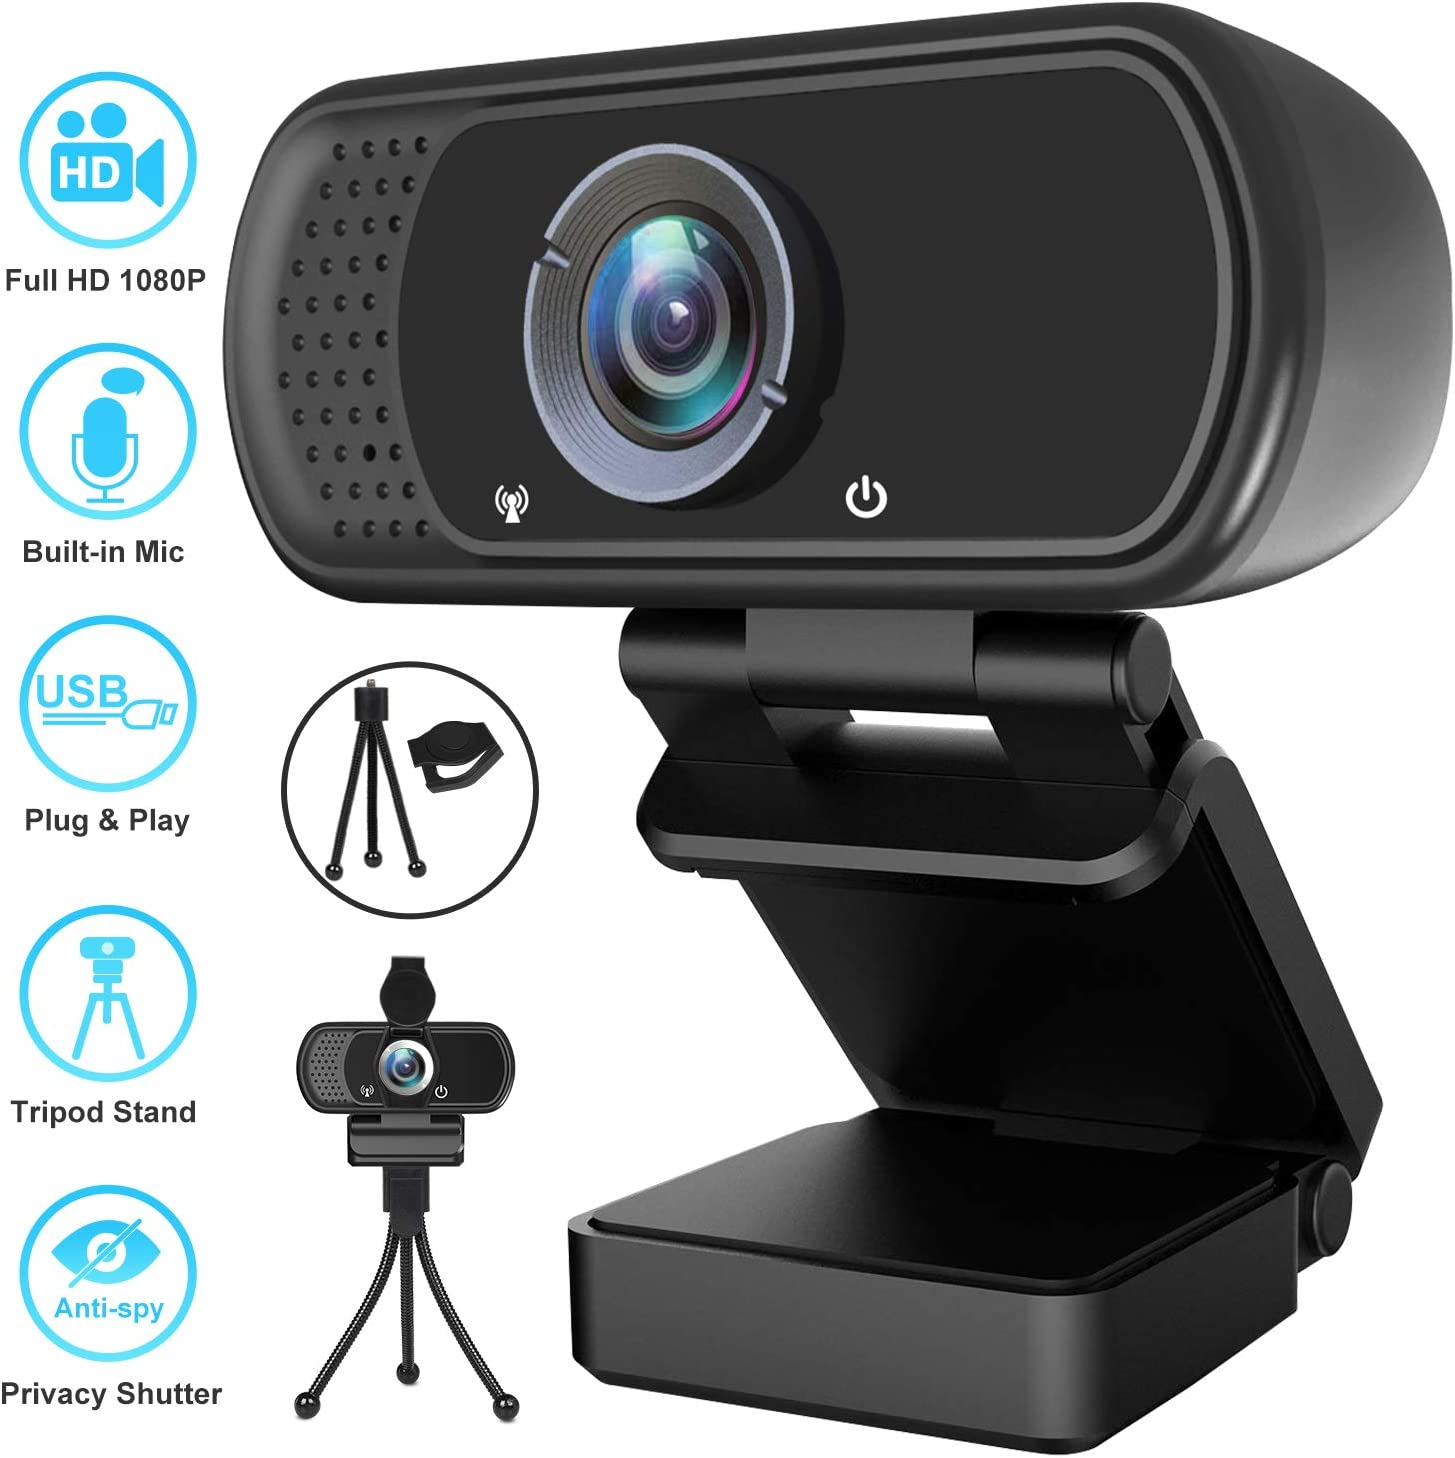 Webcam, HD Webcam 1080P with Privacy Shutter and Tripod Stand, Pro Streaming Web Camera with Microphone, Widescreen USB Computer Camera for PC Mac Laptop Desktop Video Calling Conferencing Recording